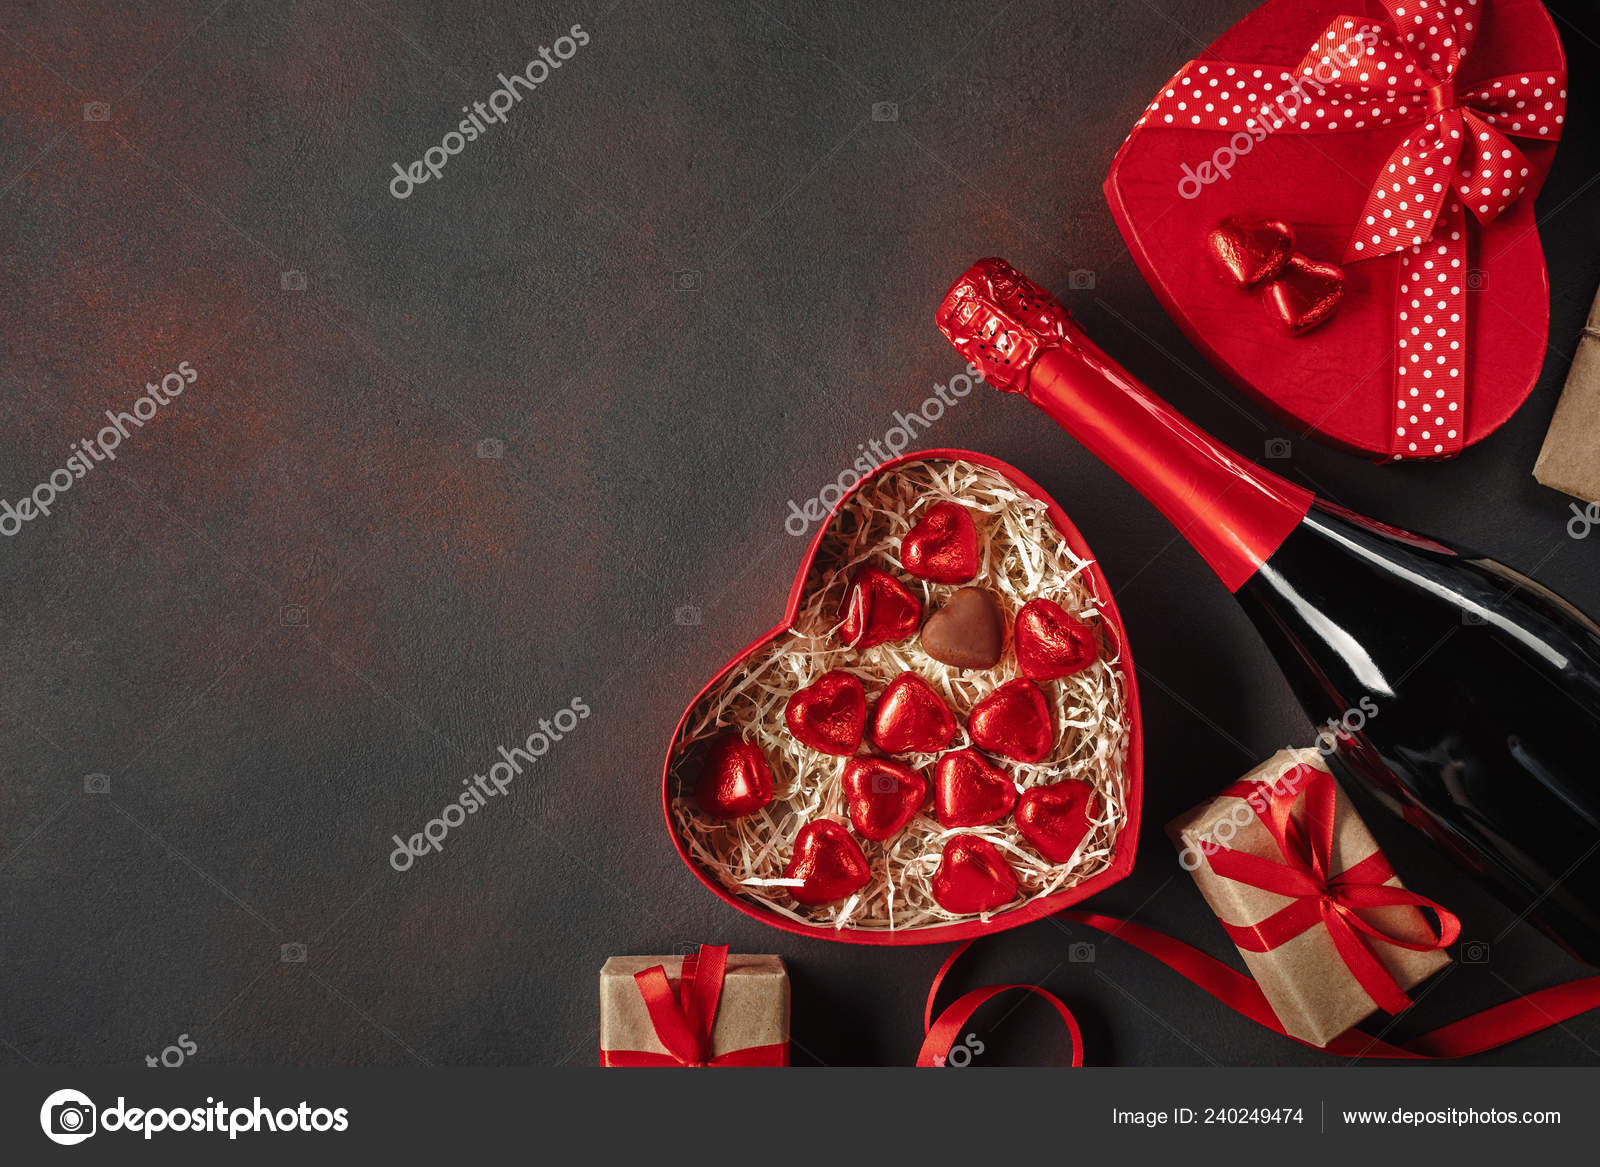 Valentine Day Box Chocolates Form Heart Gifts Champagne Top View Stock Photo C Dzlab 240249474